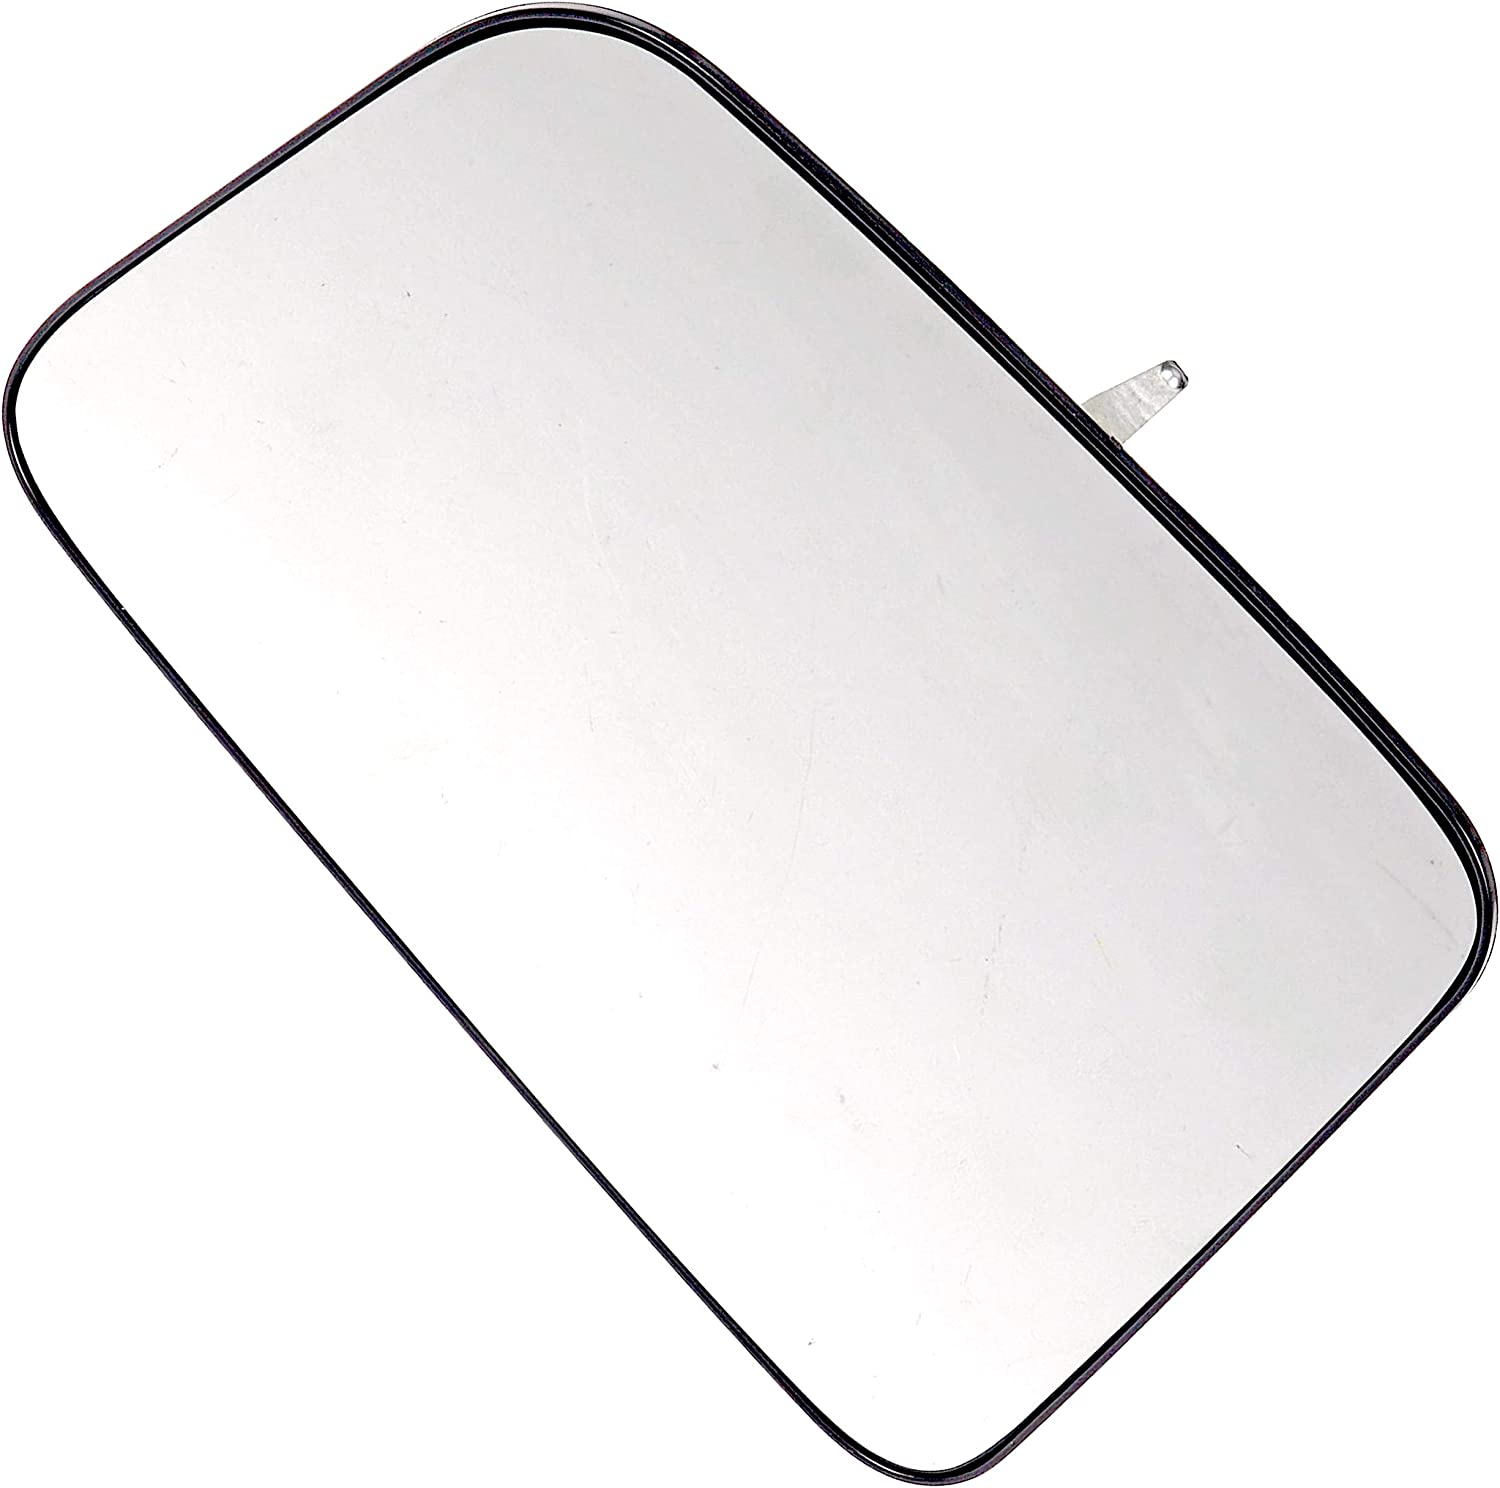 Left Side Rear View Mirror Glass Heated Door Mirror Glass Replacement fit for 2007 2008 2009 2010 2011 Ford Edge 2007-2010 Lincoln MKX ECCPP Driver Side Exterior Mirror Glasses